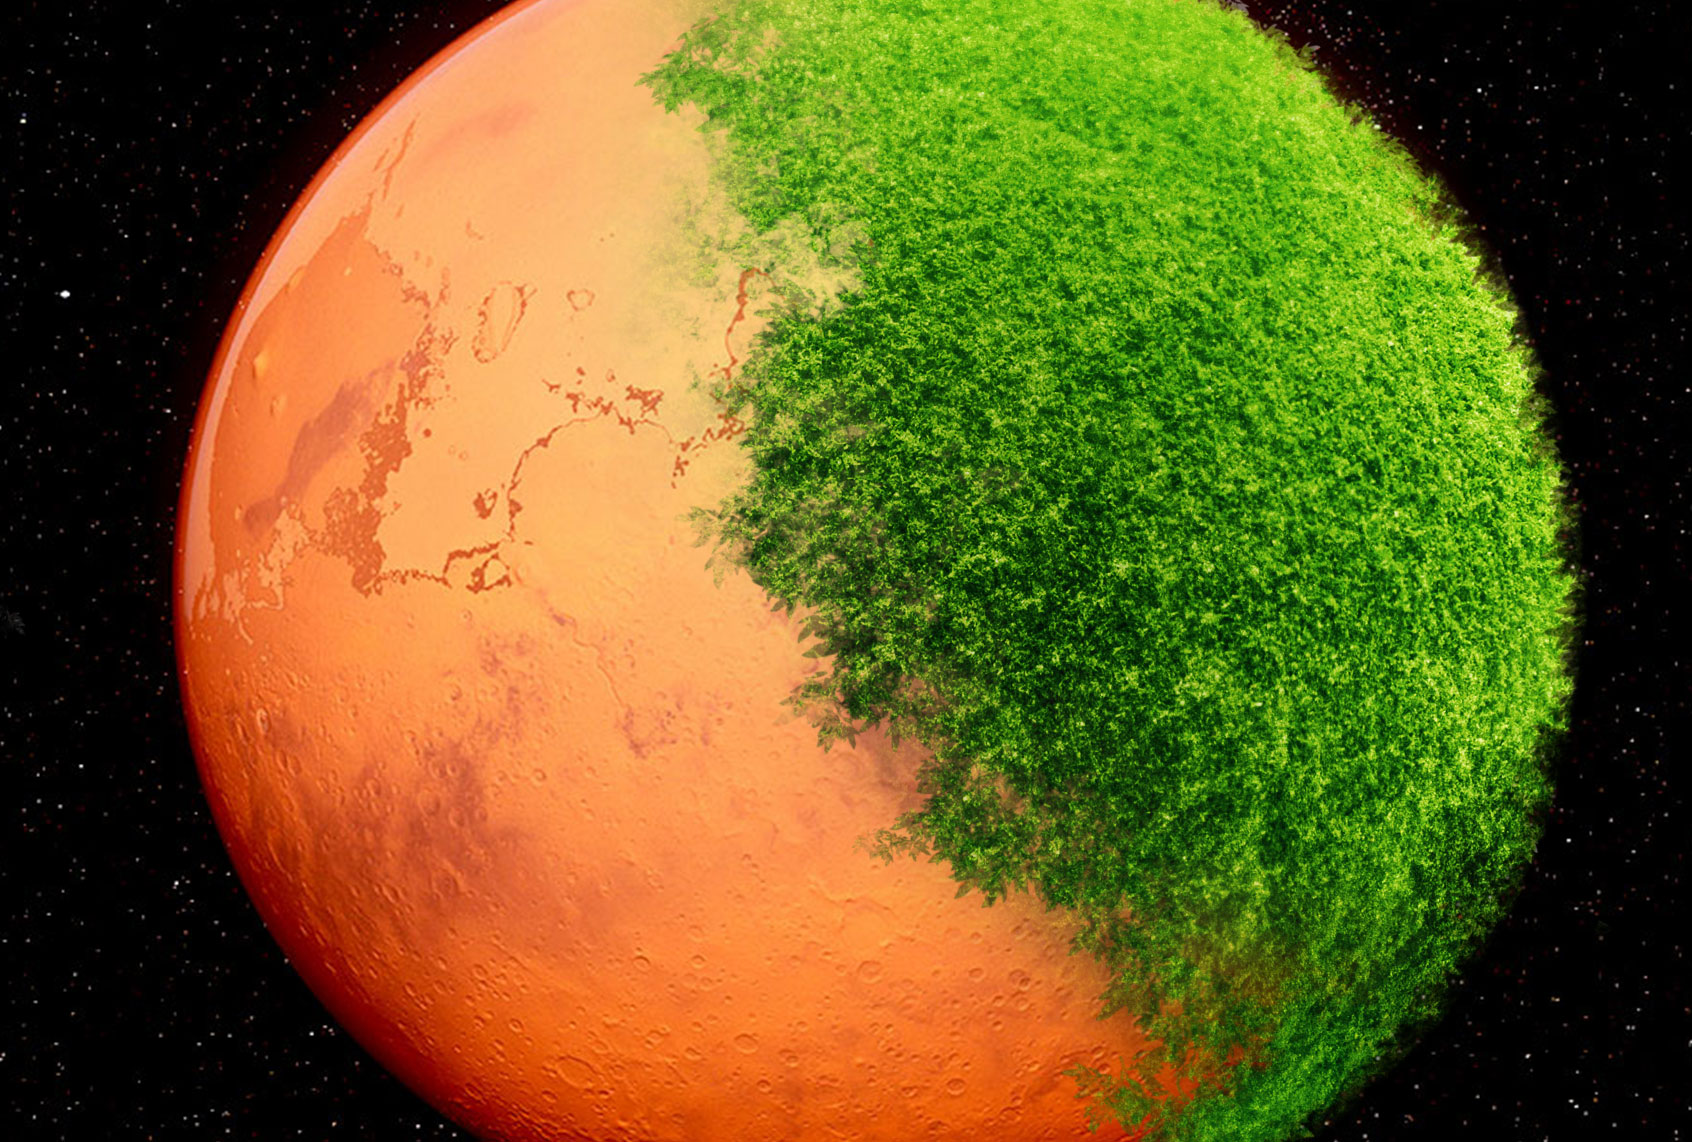 Why some scientists believe life may have started on Mars - Salon